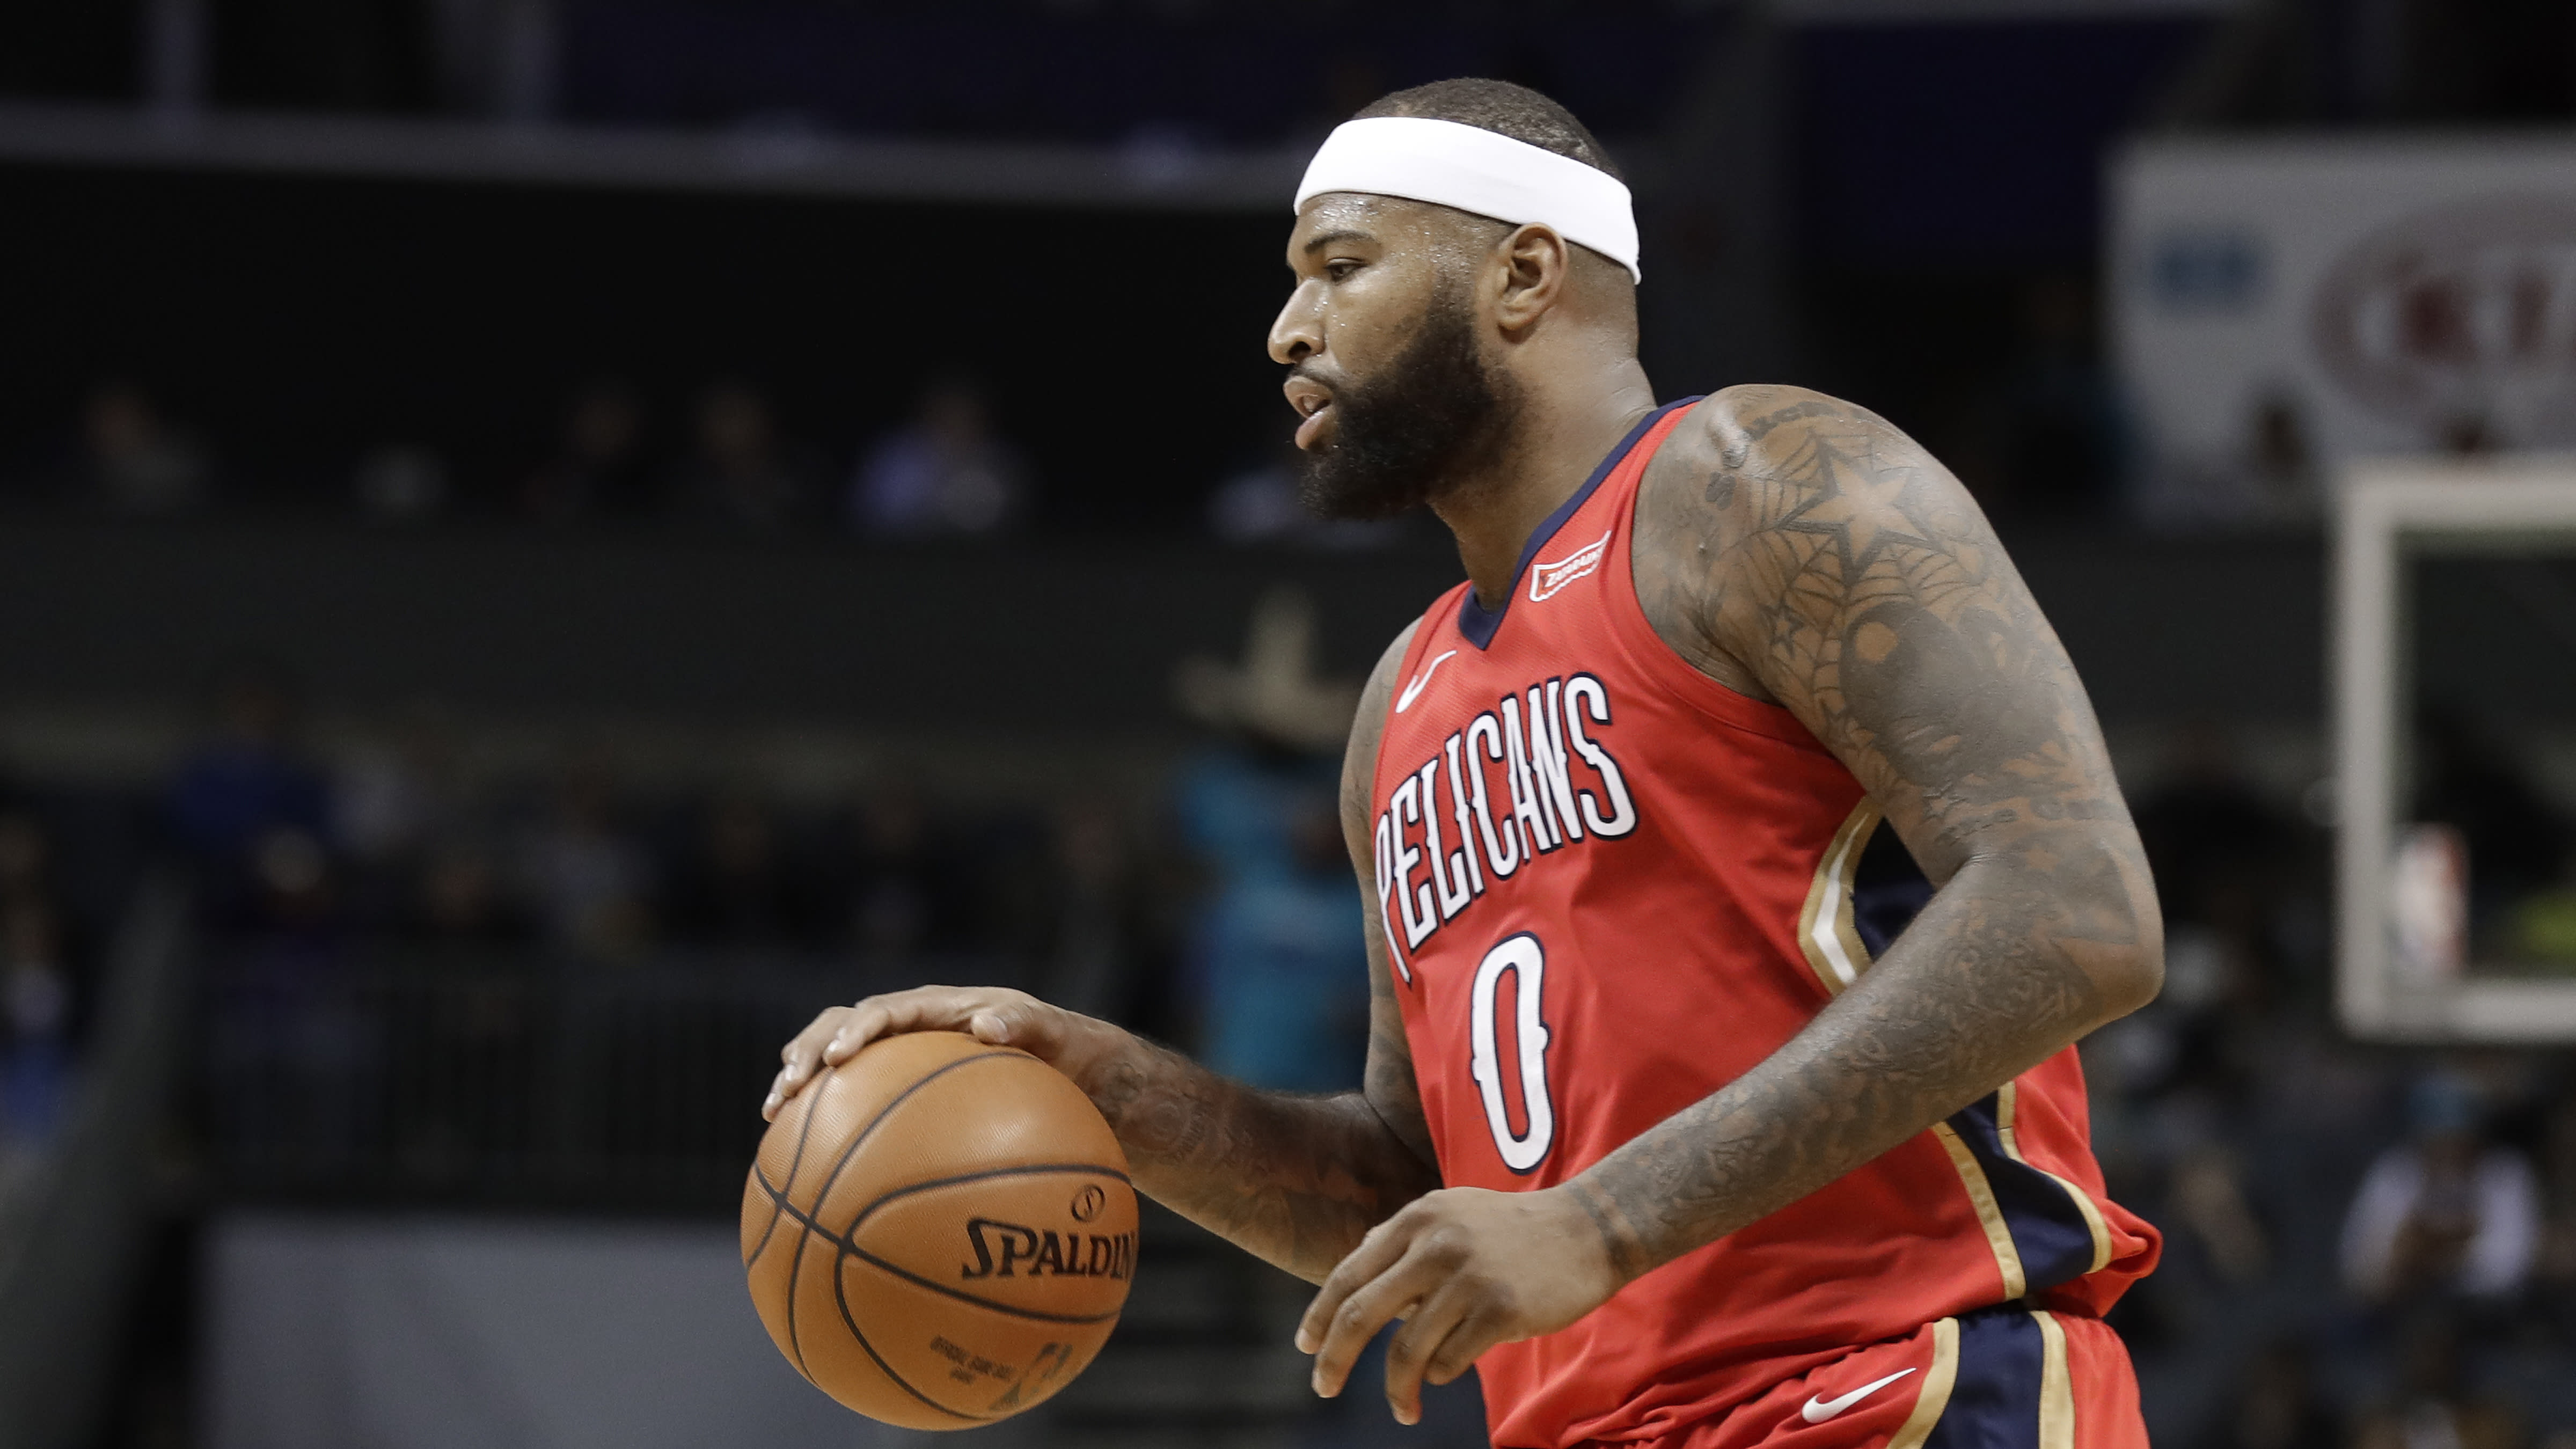 d7cbb0769 NBA social media appropriately stunned by DeMarcus Cousins deal